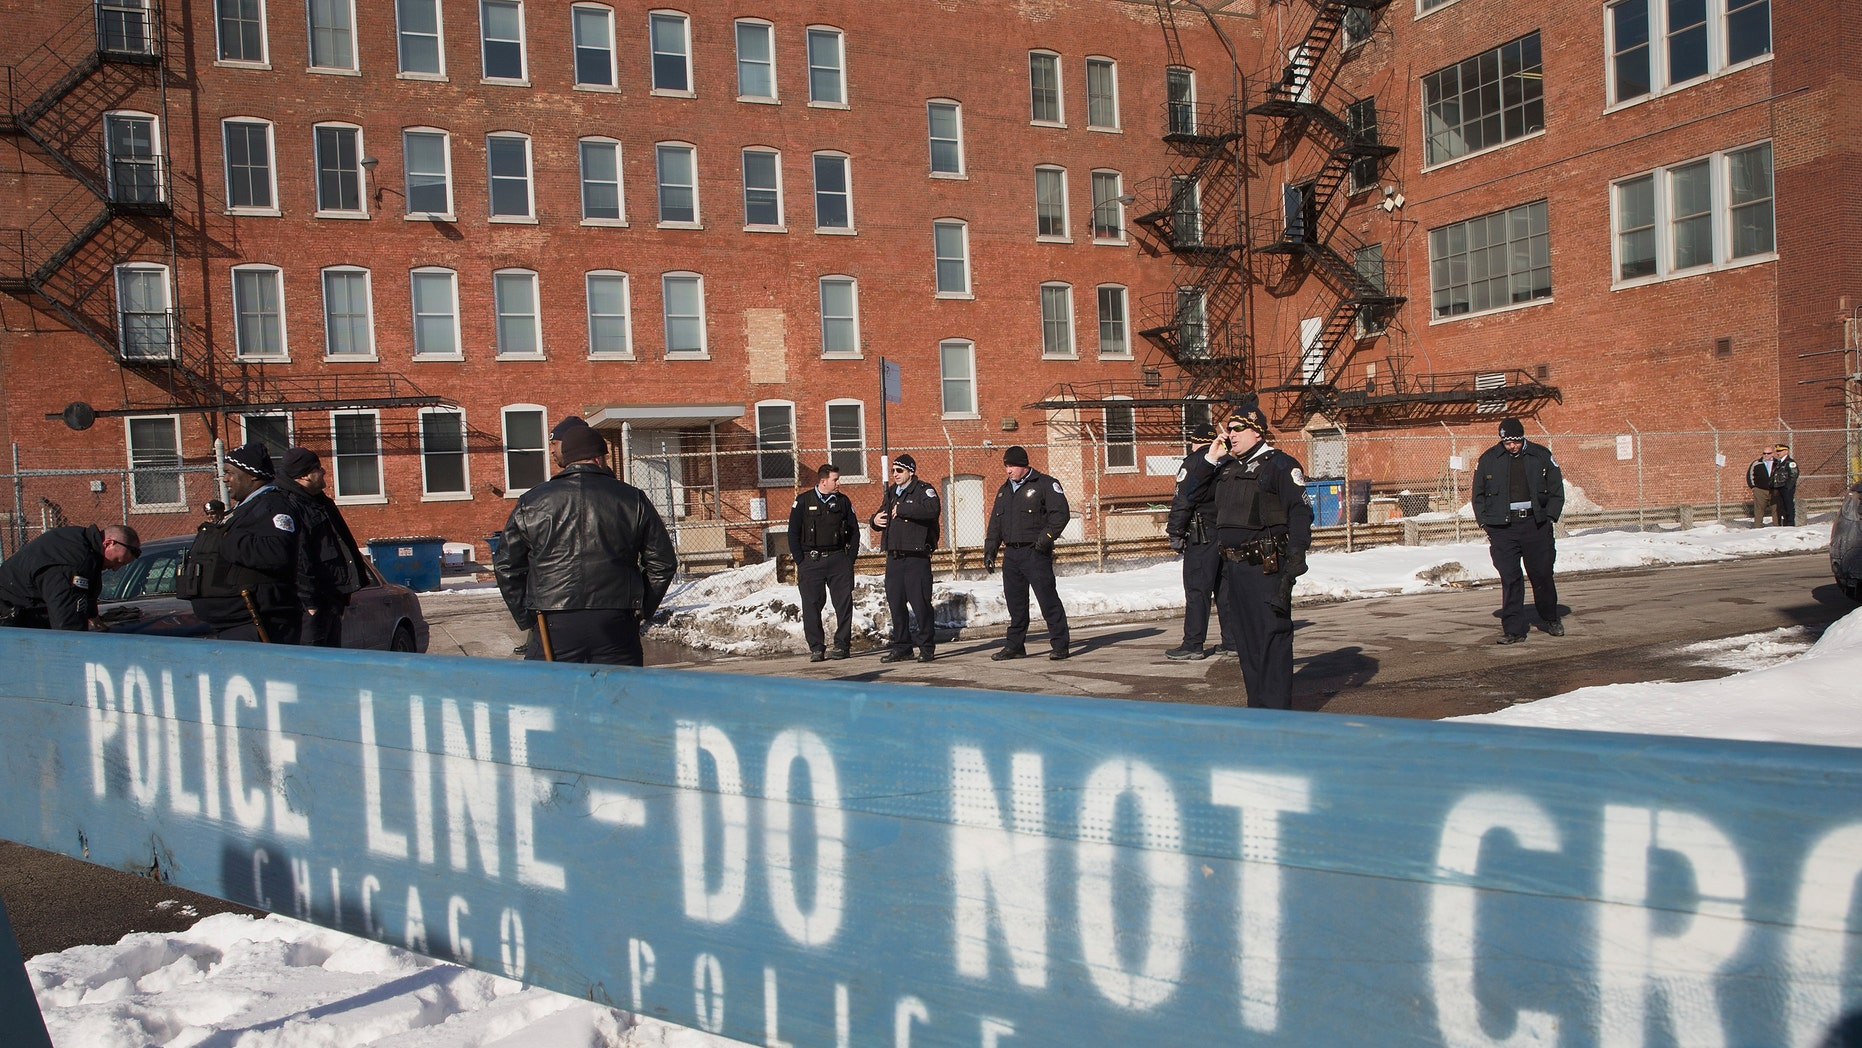 CHICAGO, IL - FEBRUARY 28: Police stand guard as demonstrators protest outside a Chicago Police facility on the city's Westside on February 28, 2015 in Chicago, Illinois. The demonstrators were demanding changes after a British newspaper article recently claimed the facility was used by Chicago police as a 'secret interrogation facility.' (Photo by Scott Olson/Getty Images)